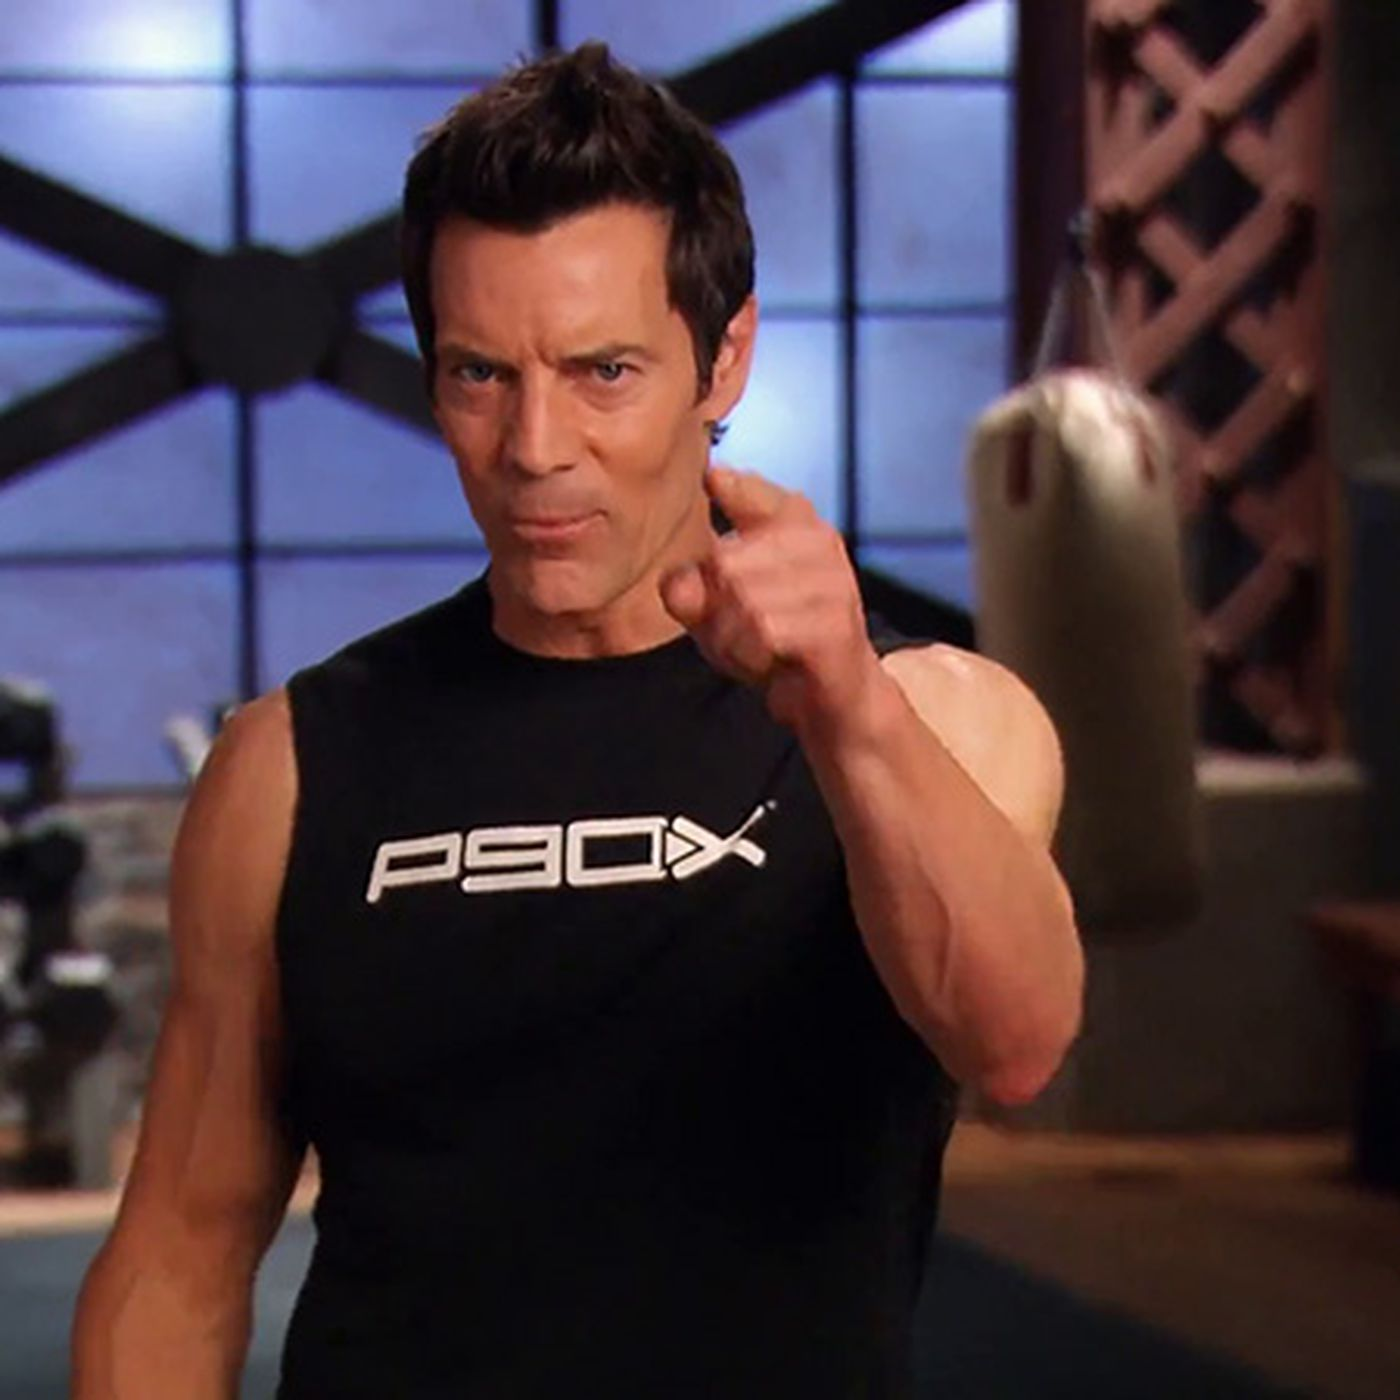 P90x shoulders and arms video youtube